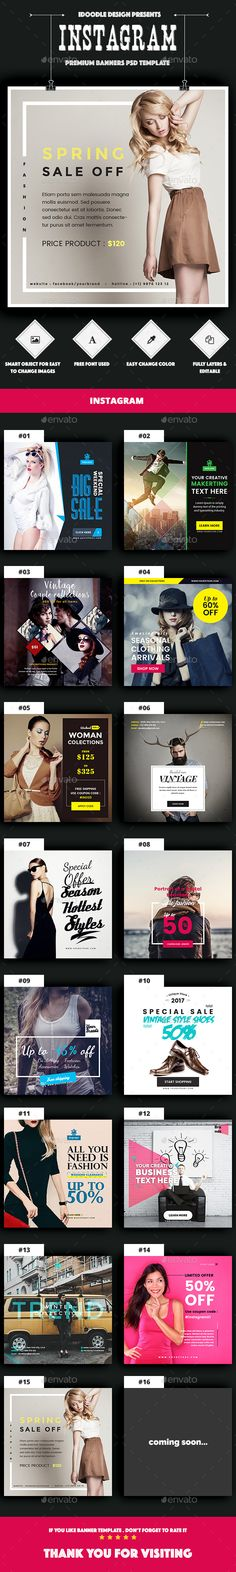 15 Instagram Banners Template - Download Here : http://graphicriver.net/item/promotion-instagram-banners-ad-15-psd/15595749?ref=yinkira